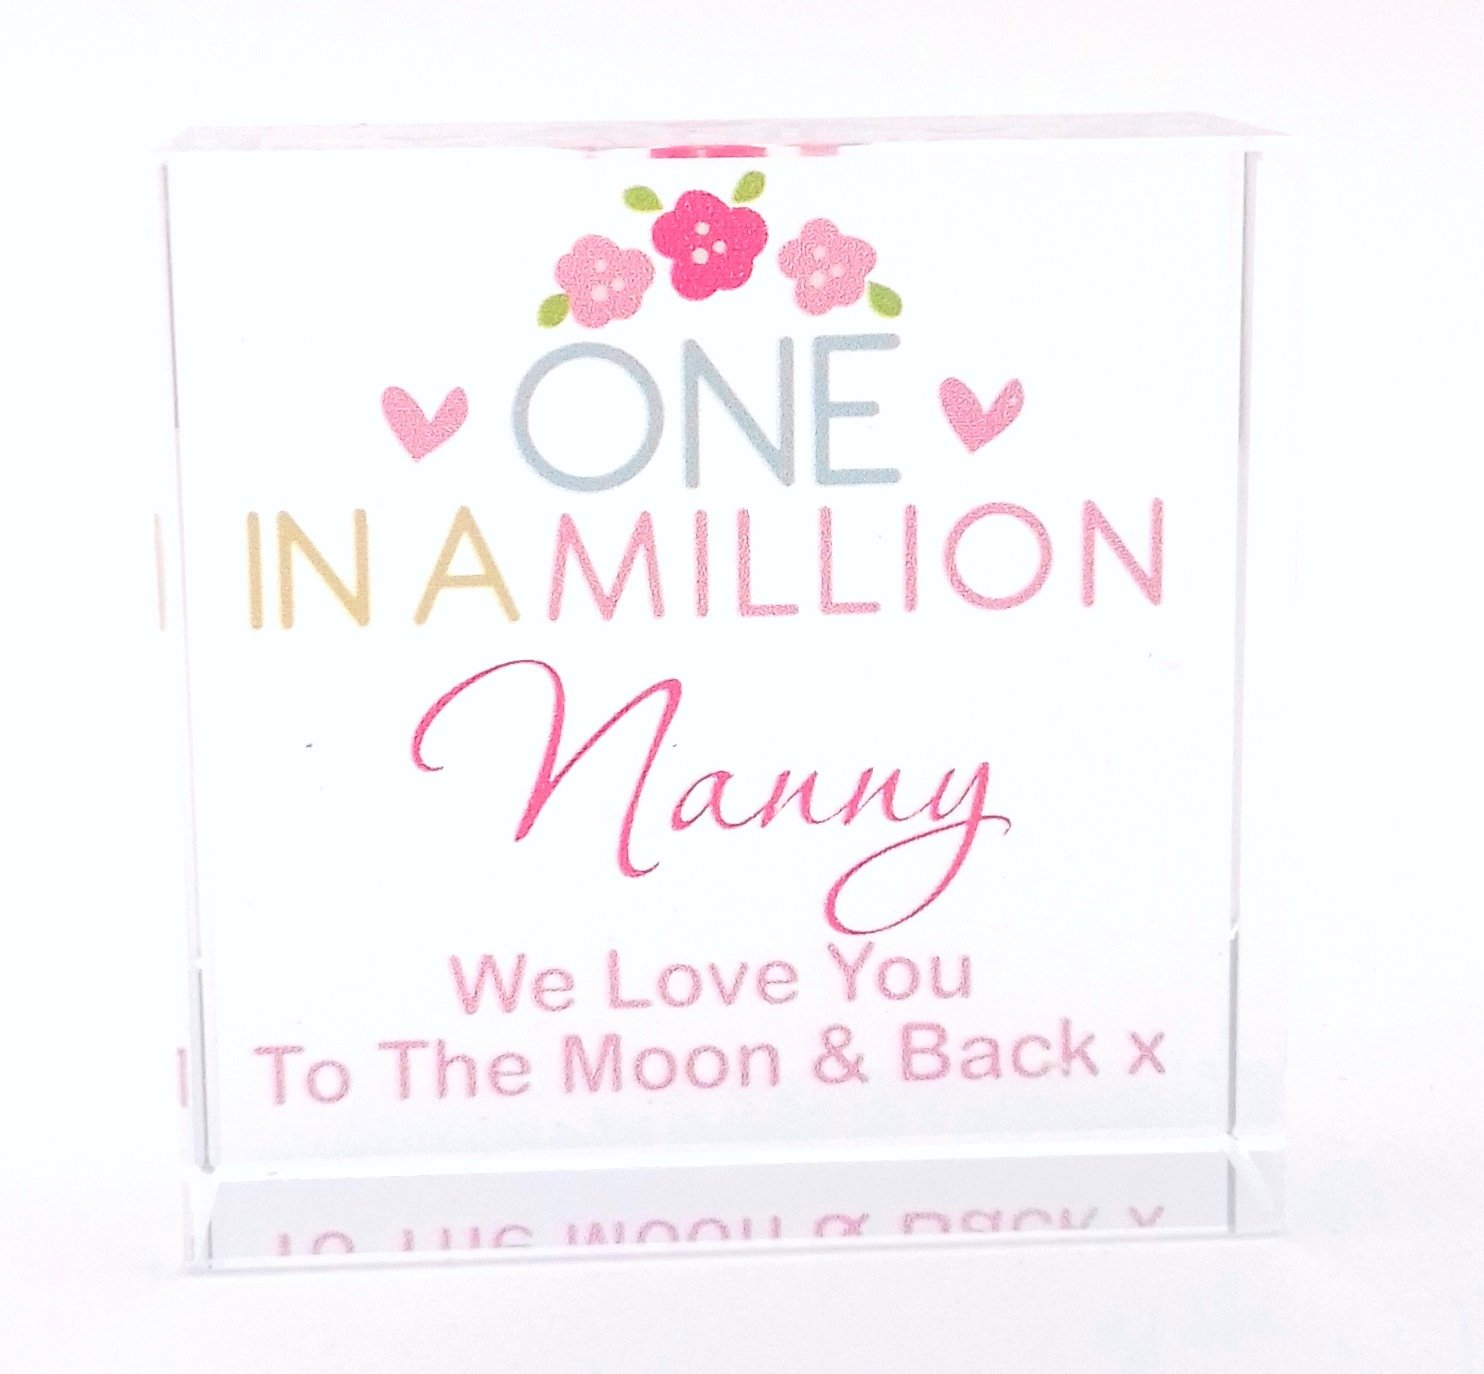 Boxes Home Kitchen Nanny We Love You To The Moon Back Silver Finish Trinket Box Gift Gifts Presents Ideas For Her Birthday Christmas Mothers Day